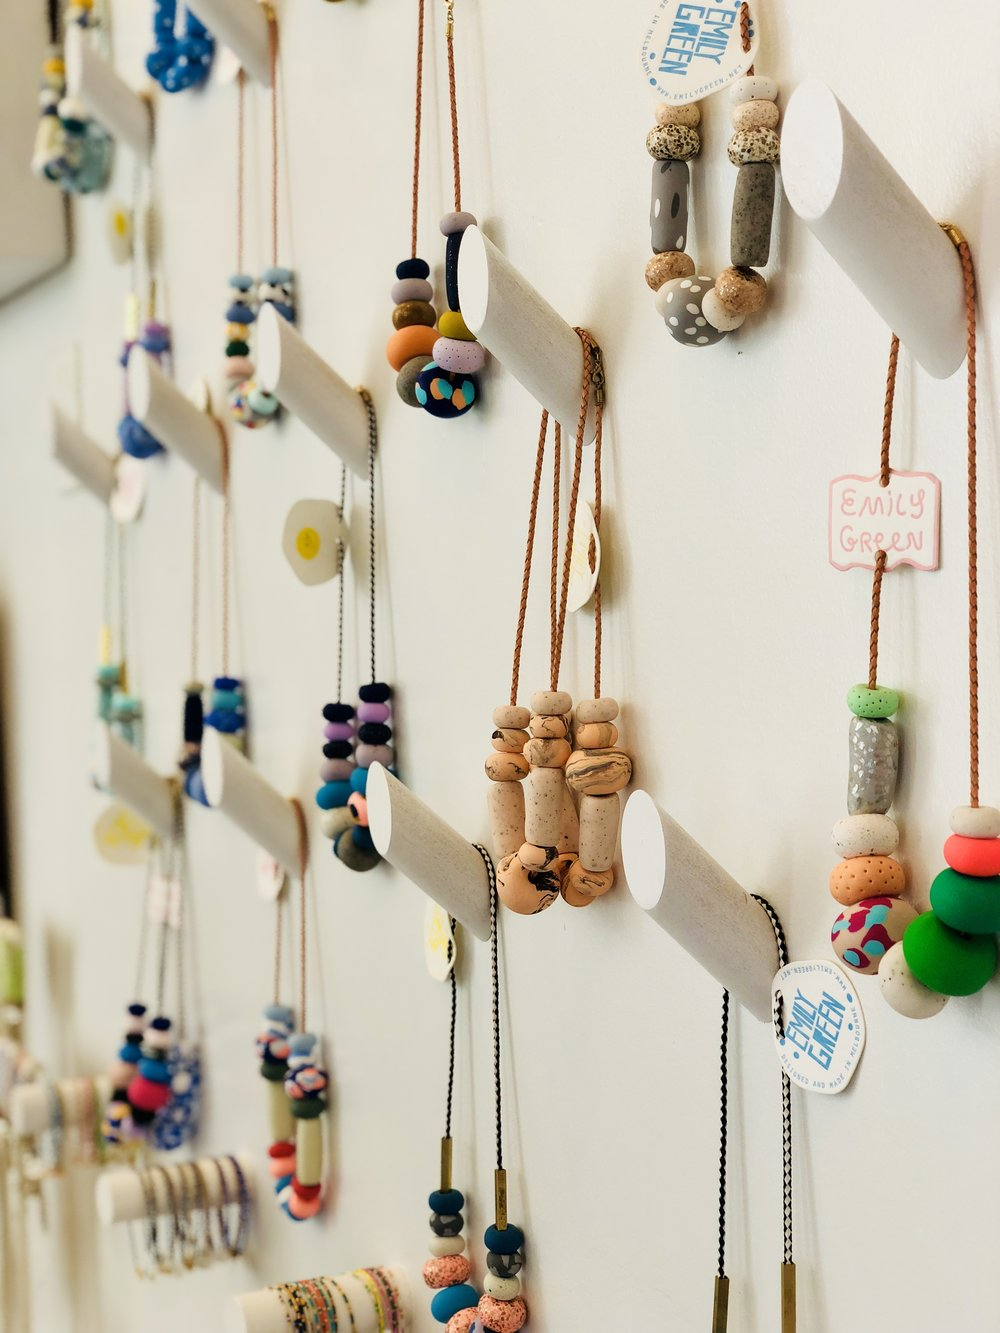 Necklaces by  Melbourne-based artist, Emily Green.